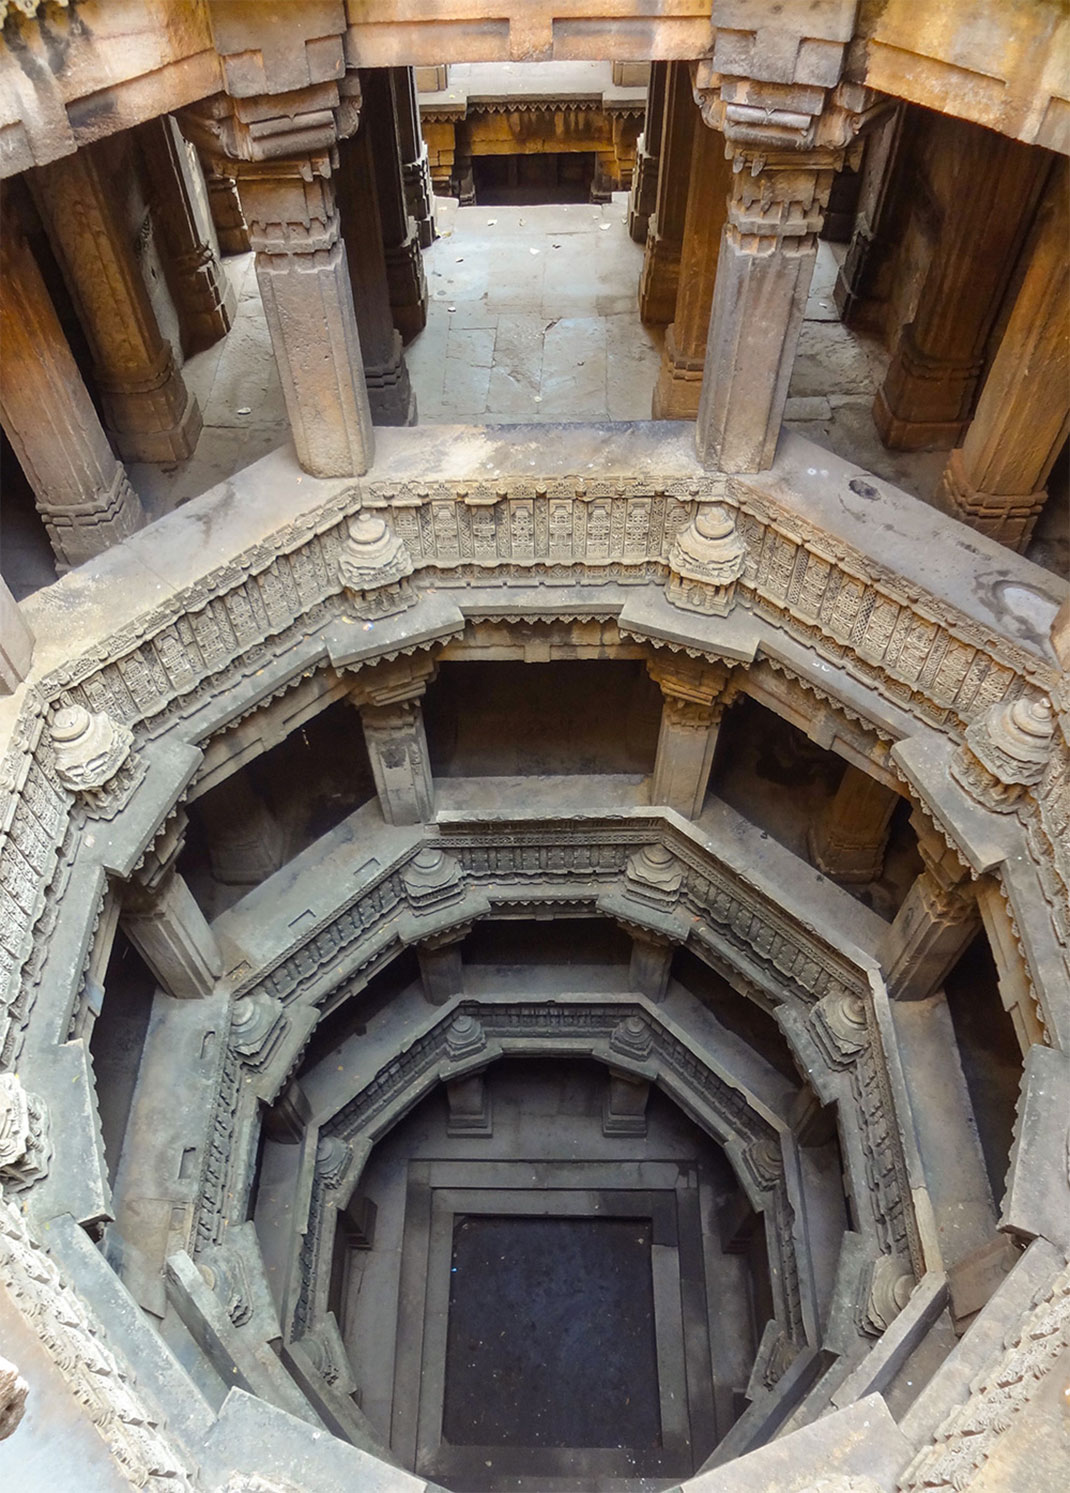 Admire These 2000 Year Old Somptous Buildings In India Destined To Disappear-7